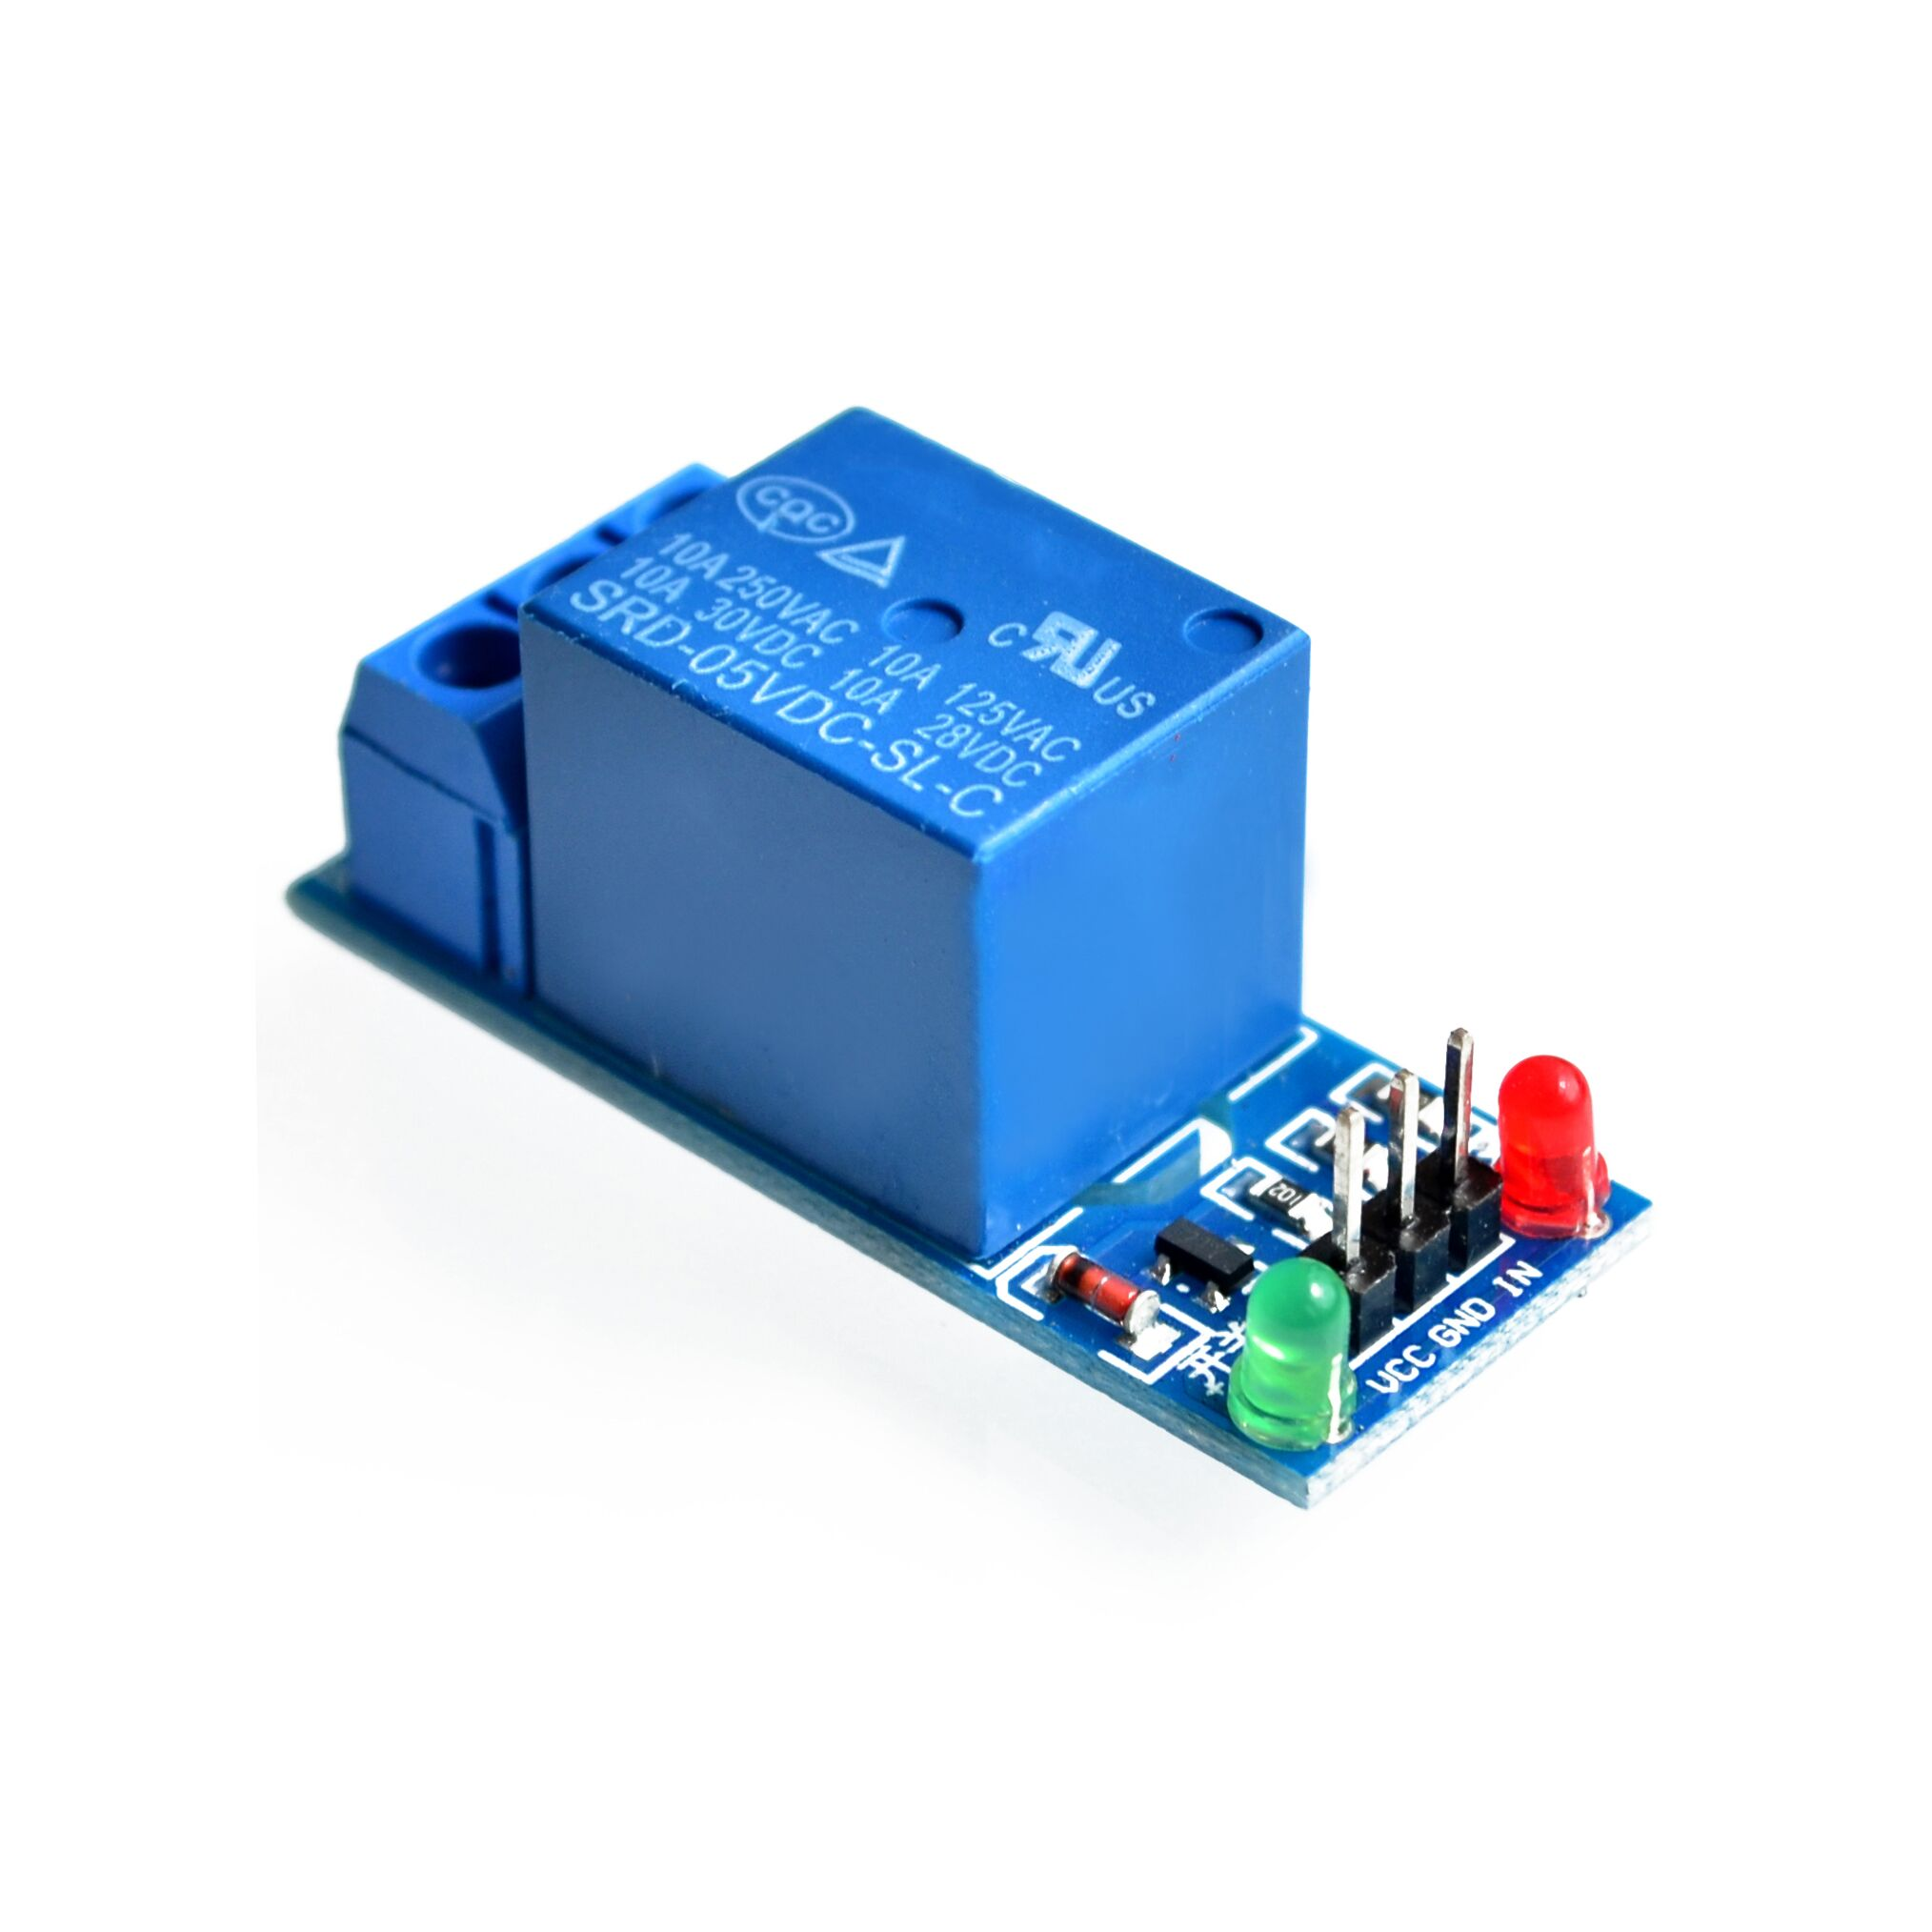 2pcs Mini 1 Channel 5v Dc Dpdt Relay Board Double Pole Throw Spdt Micro 5vdc New Level Trigger One Module Interface Shield For Pic Avr Dsp